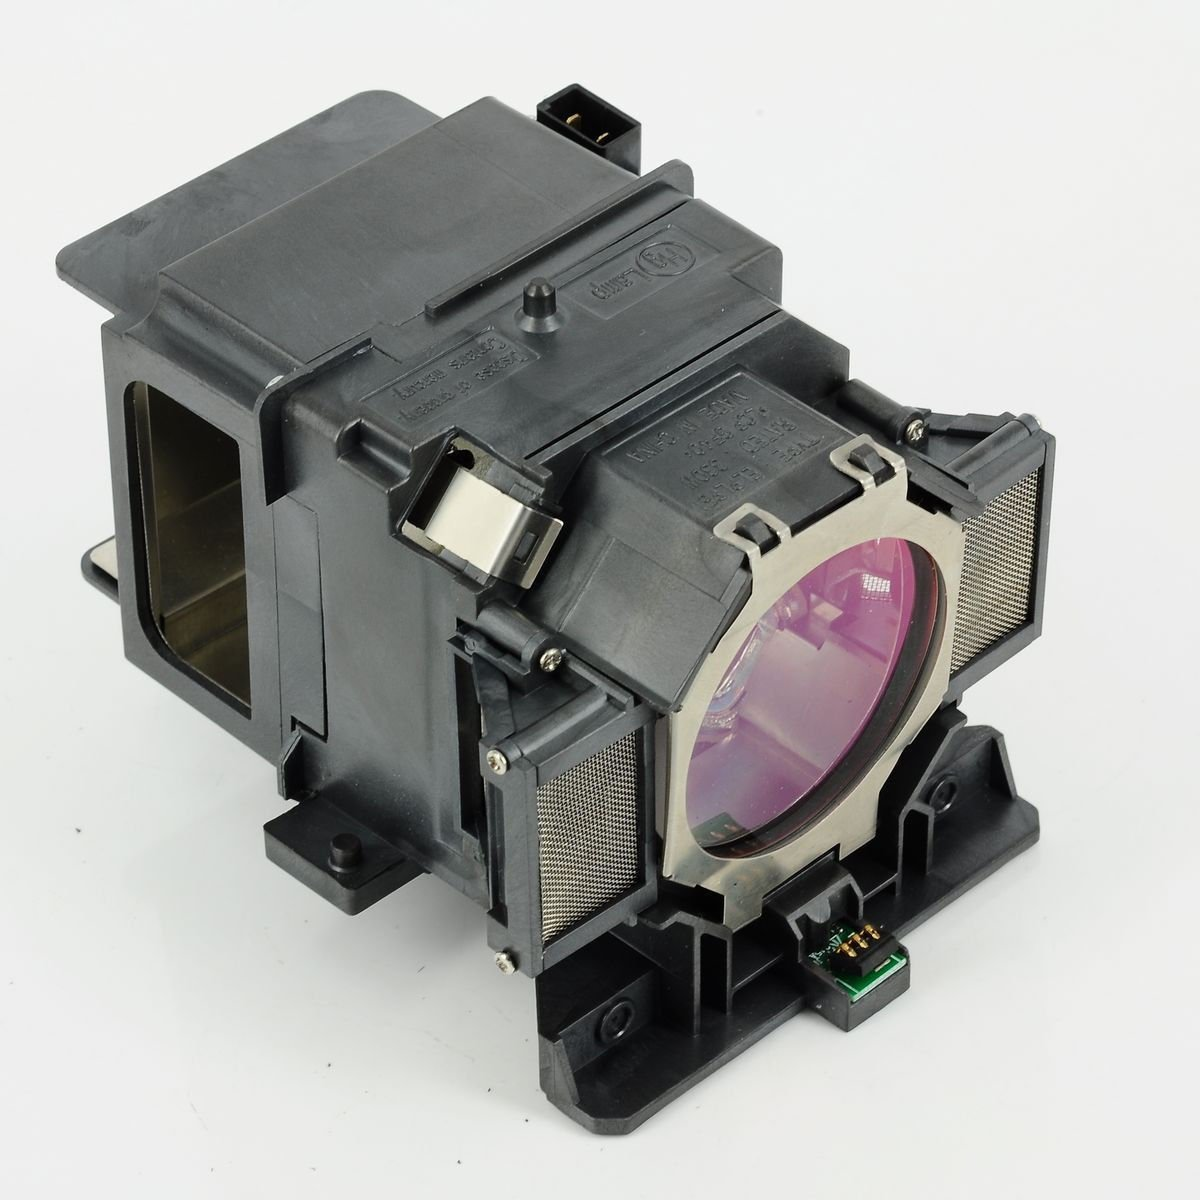 Projector Lamp Bulb ELPLP73 V13H010L73 for Epson EB-Z8350W EB-Z8355W EB-Z8455WU EB-Z8450WU with Housing osram lamp housing for epson v11h369020 projector dlp lcd bulb